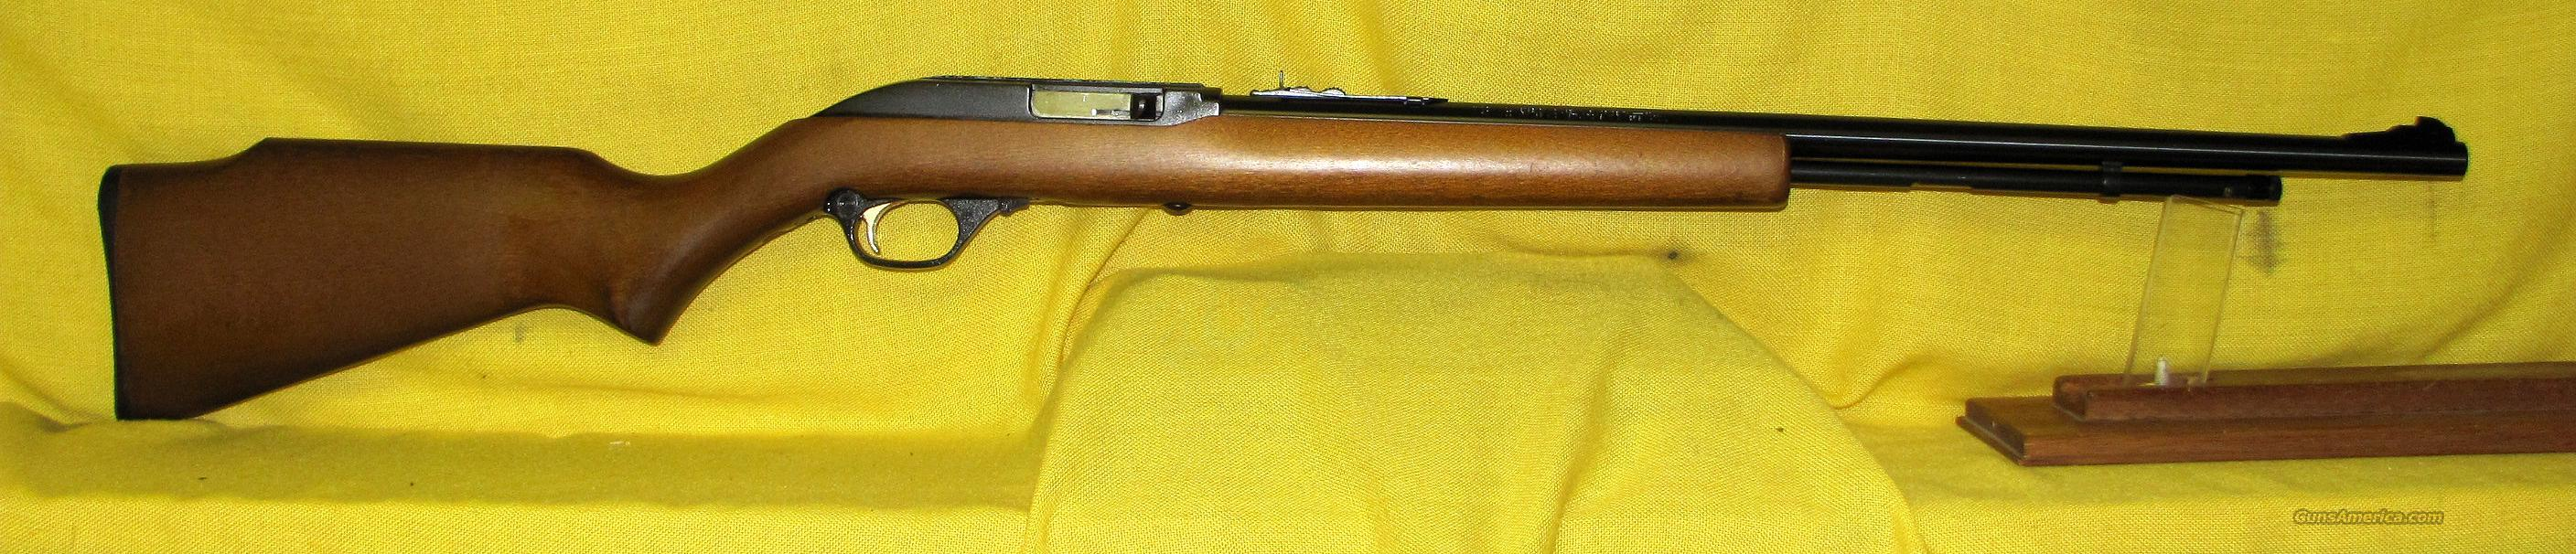 "MARLIN 60 .22LR 22"" BARREL  Guns > Rifles > Marlin Rifles > Modern > Semi-auto"